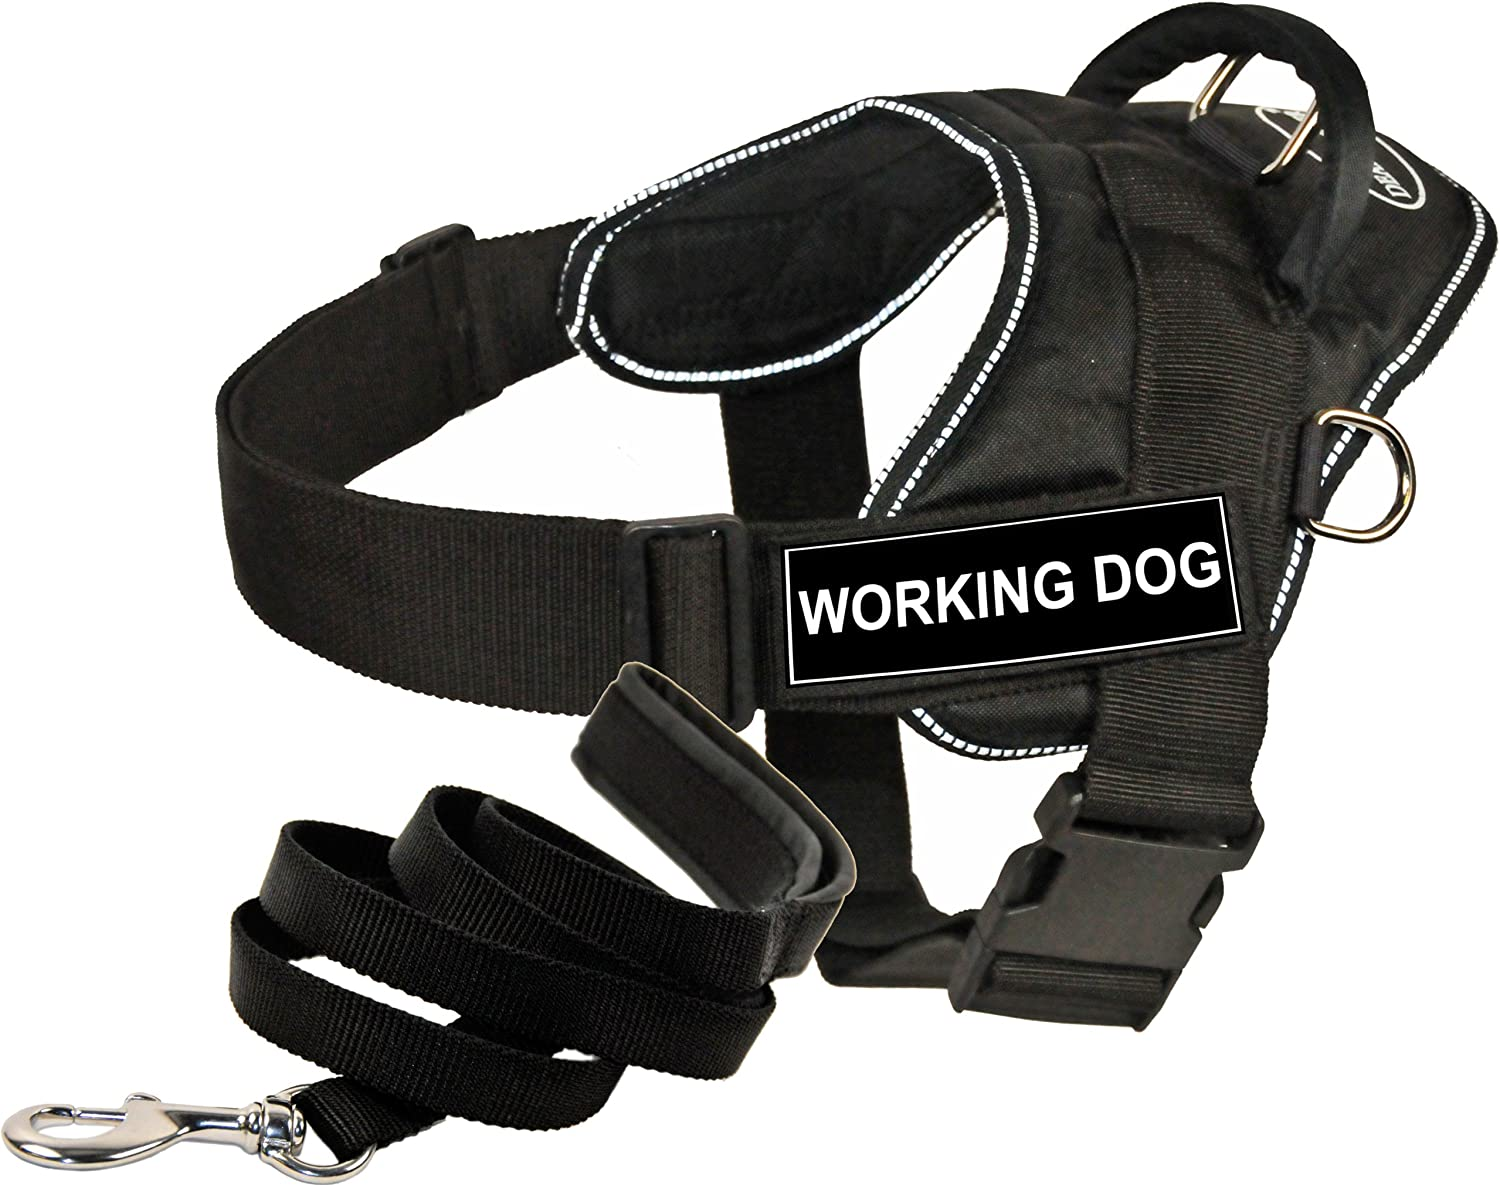 Dean and Tyler Bundle  One DT Fun Works  Harness, Working Dog, Reflective, XS (20   23 ) + One Padded Puppy  Leash, 6 FT Stainless Snap  Black